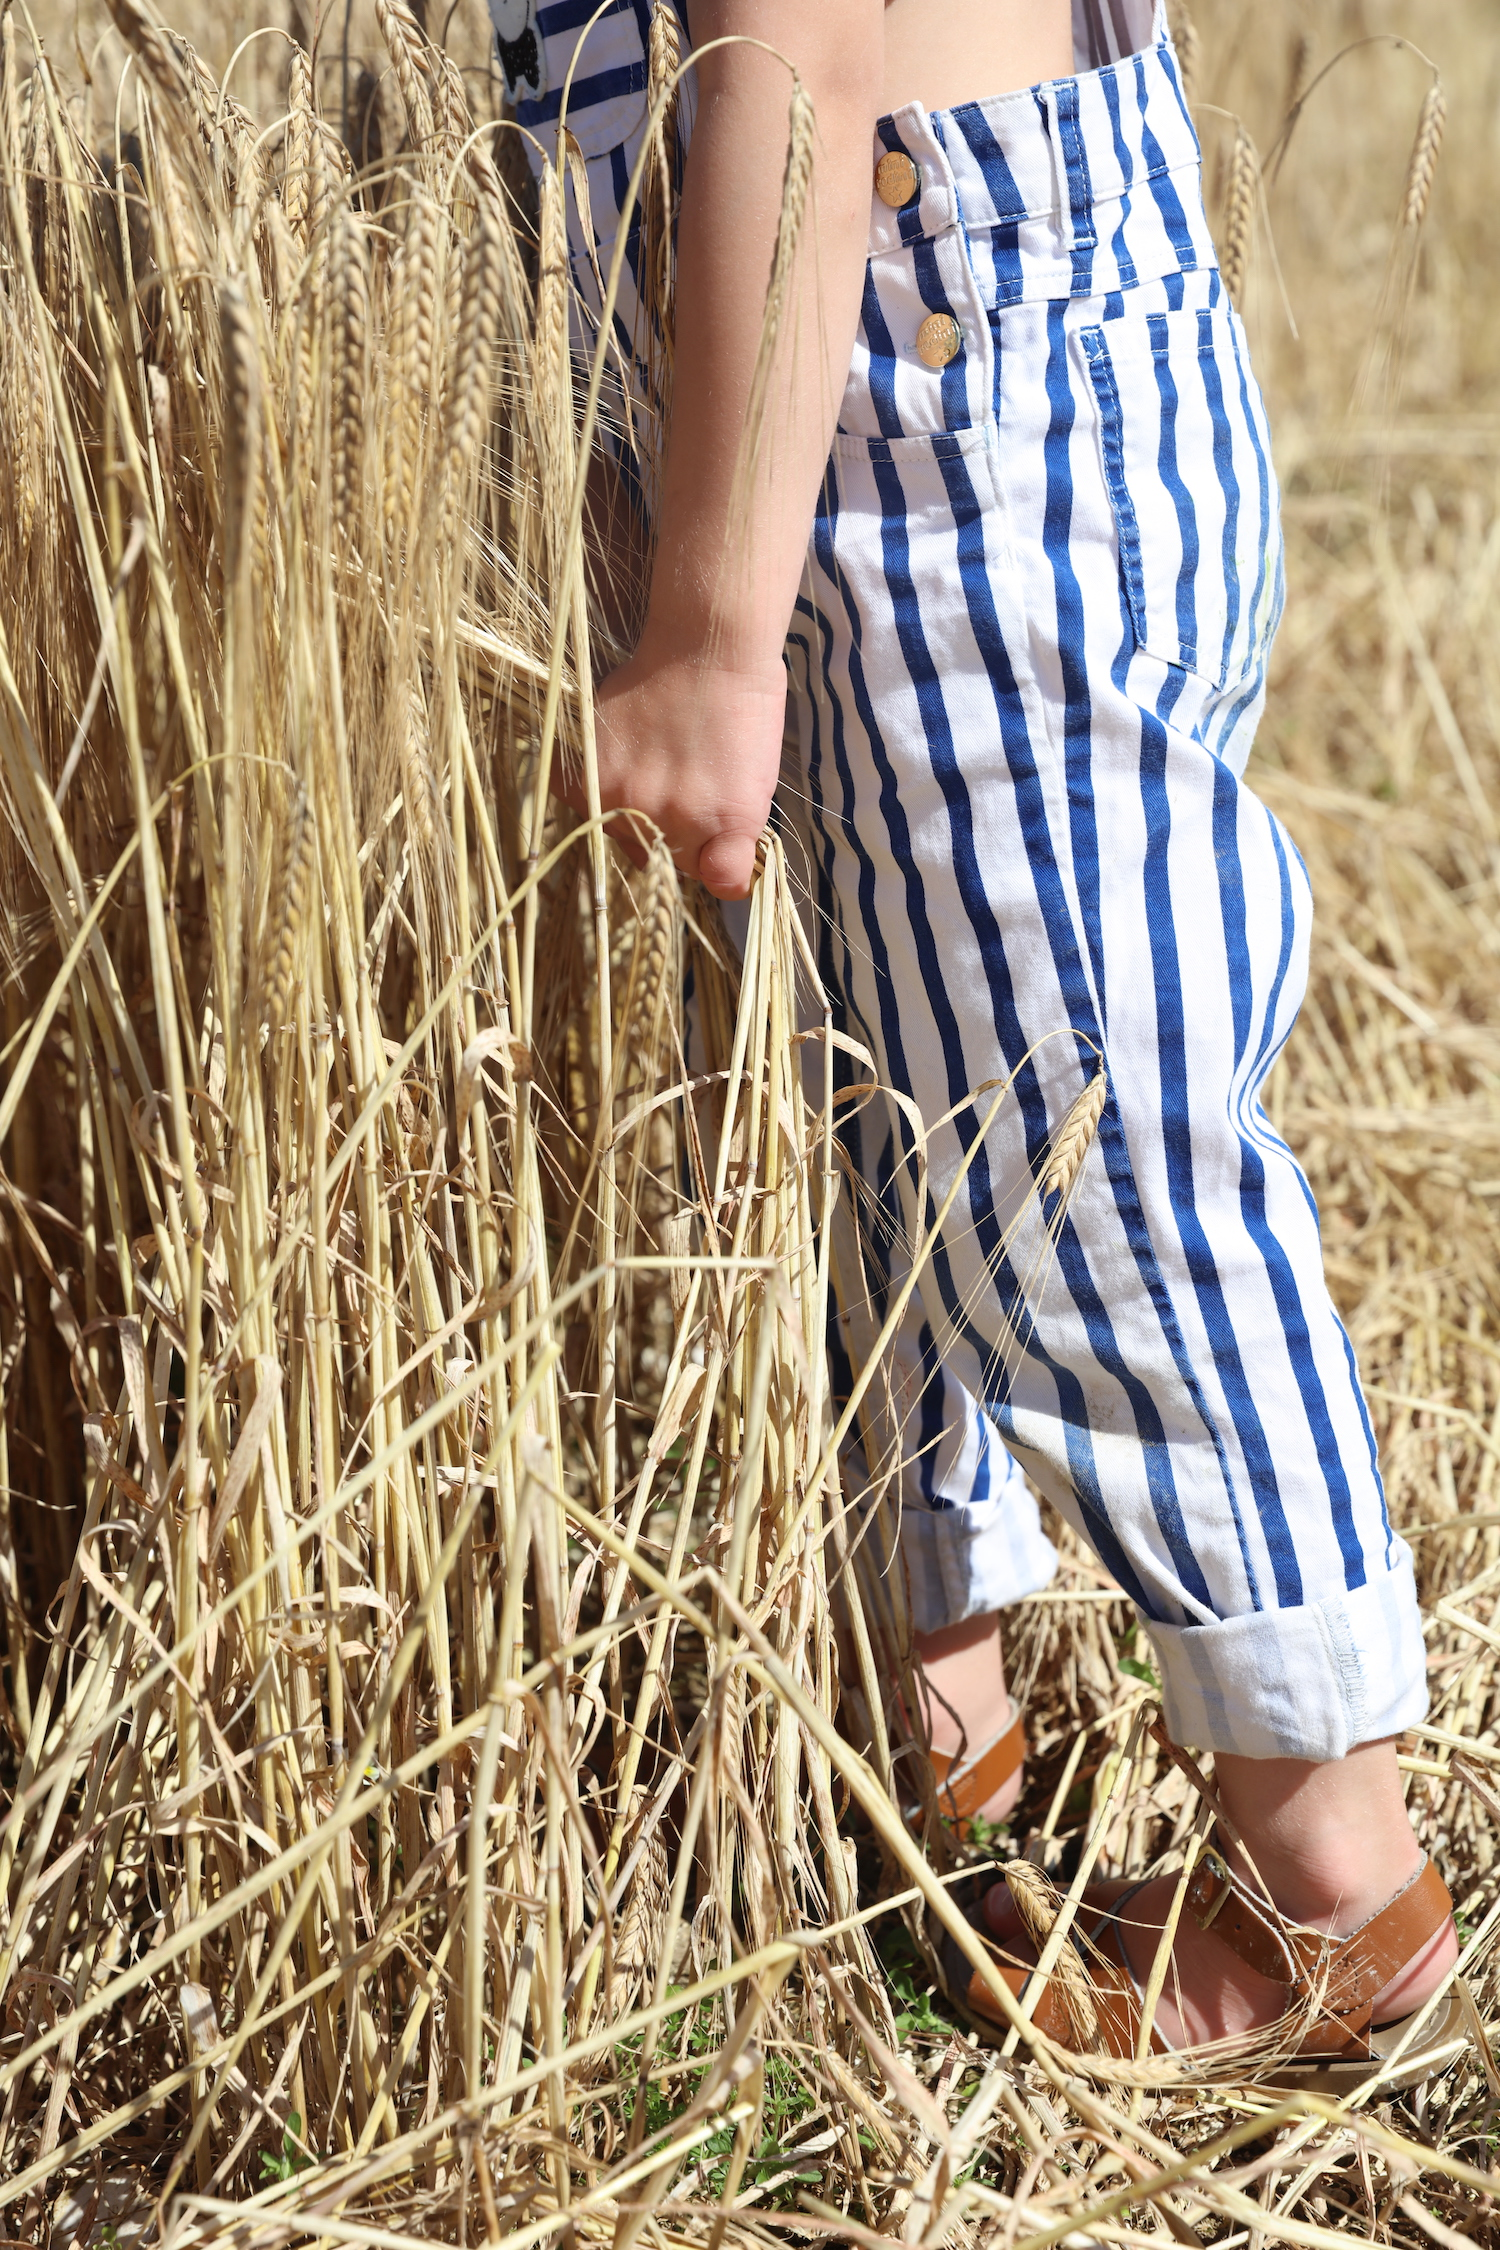 boys_dungarees_childrensalon_minir_rodini